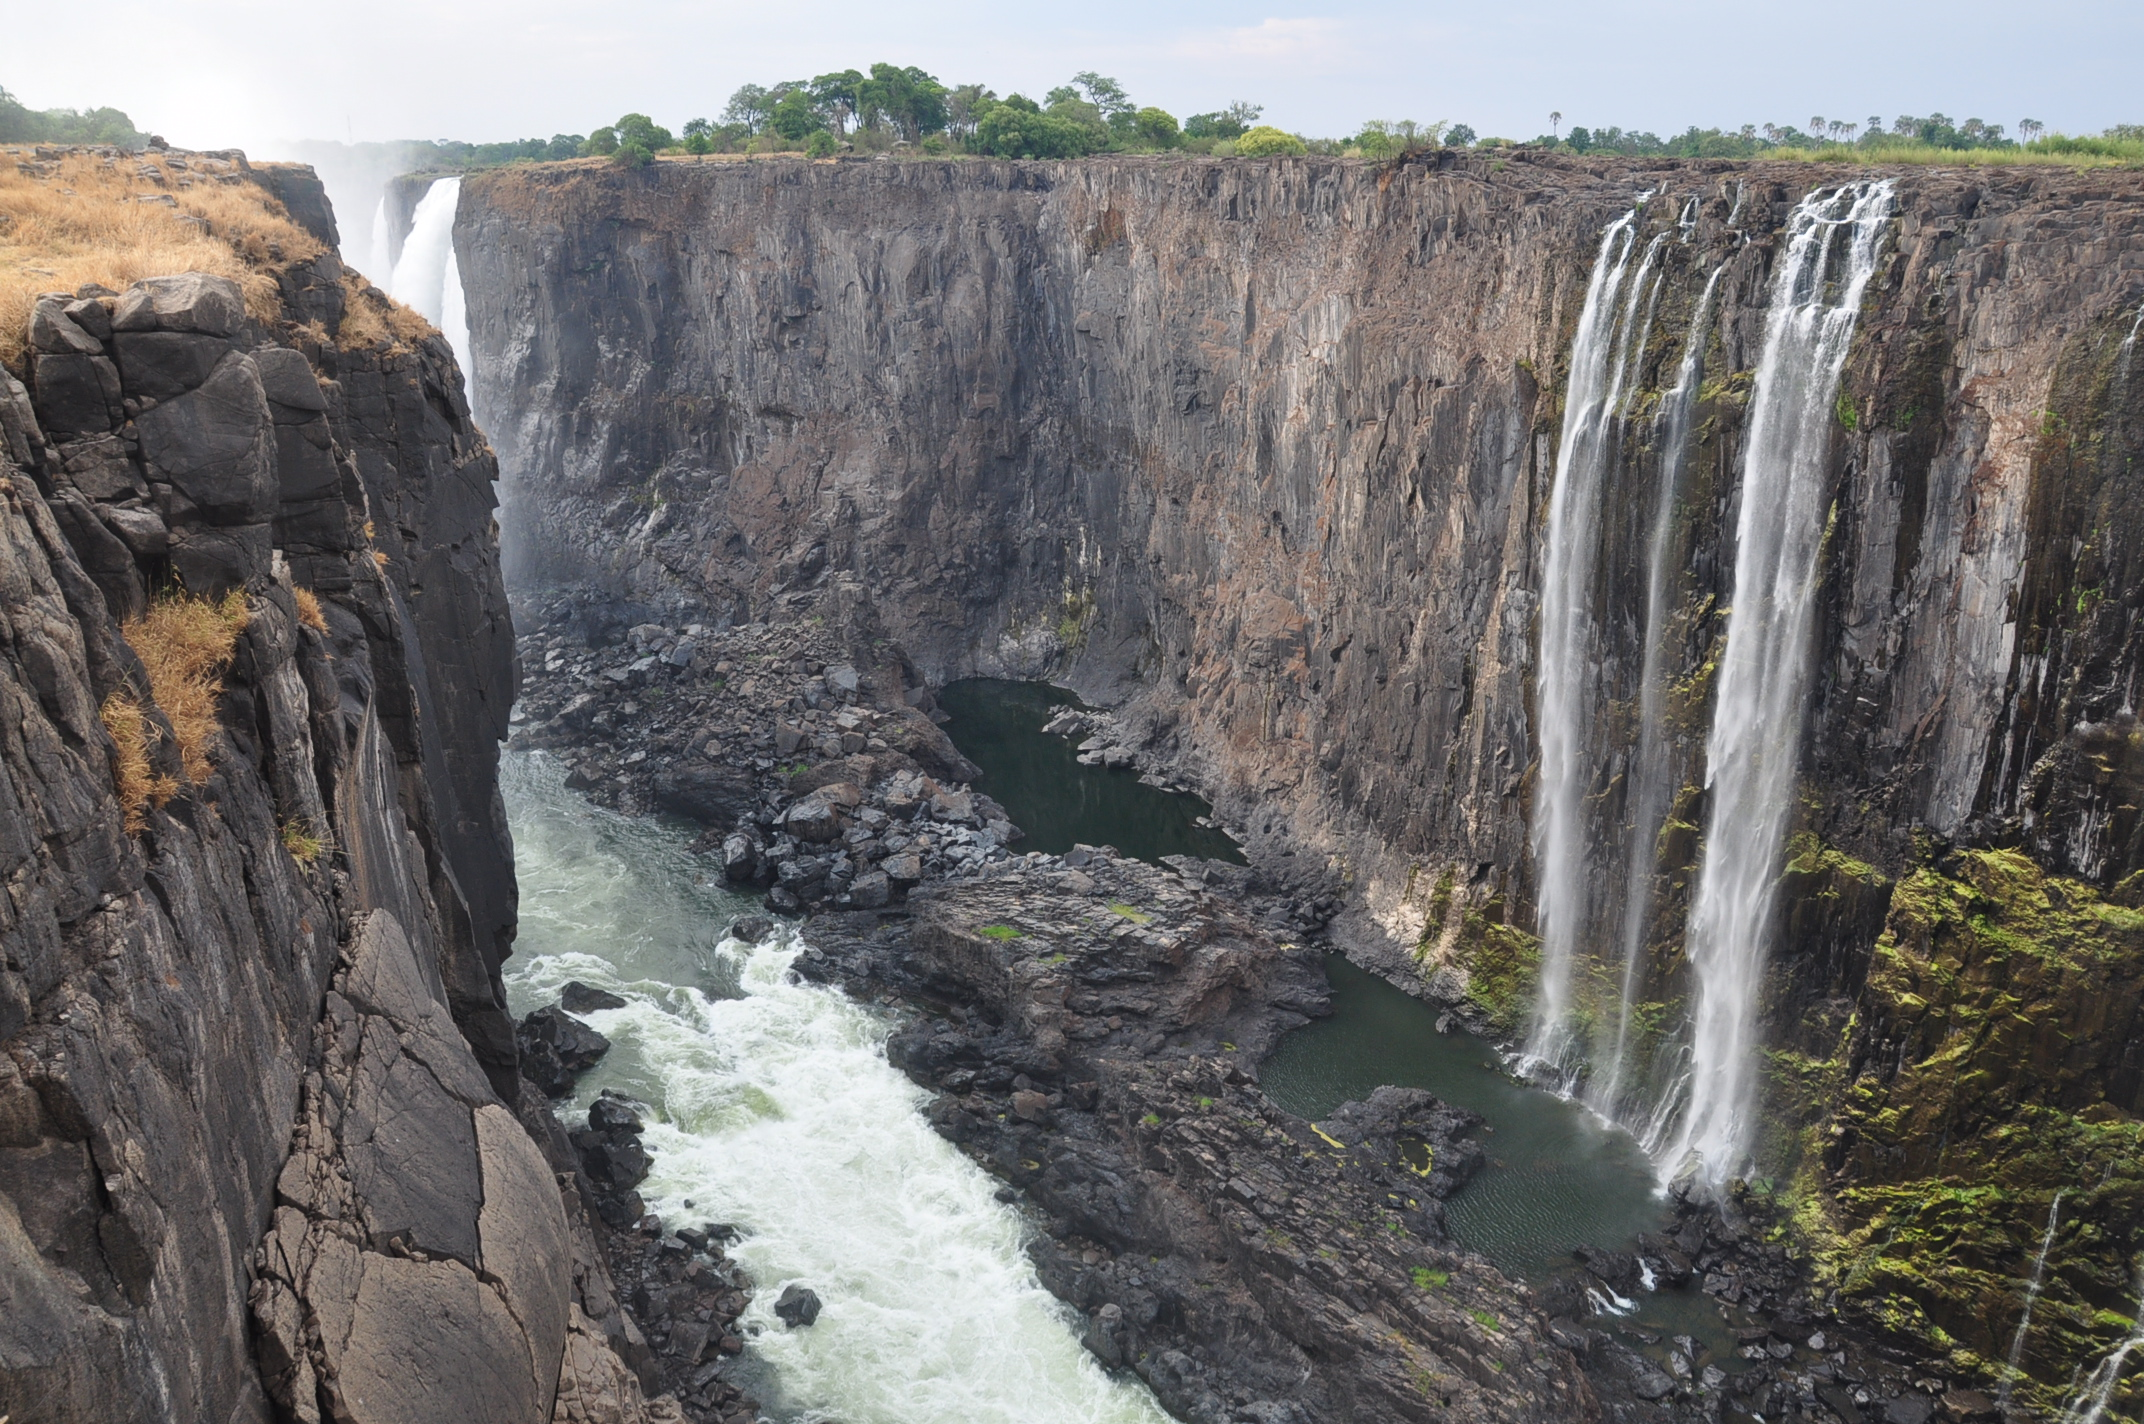 Victoria_falls_during_dry_season_2011 (Wikimedia Commons)